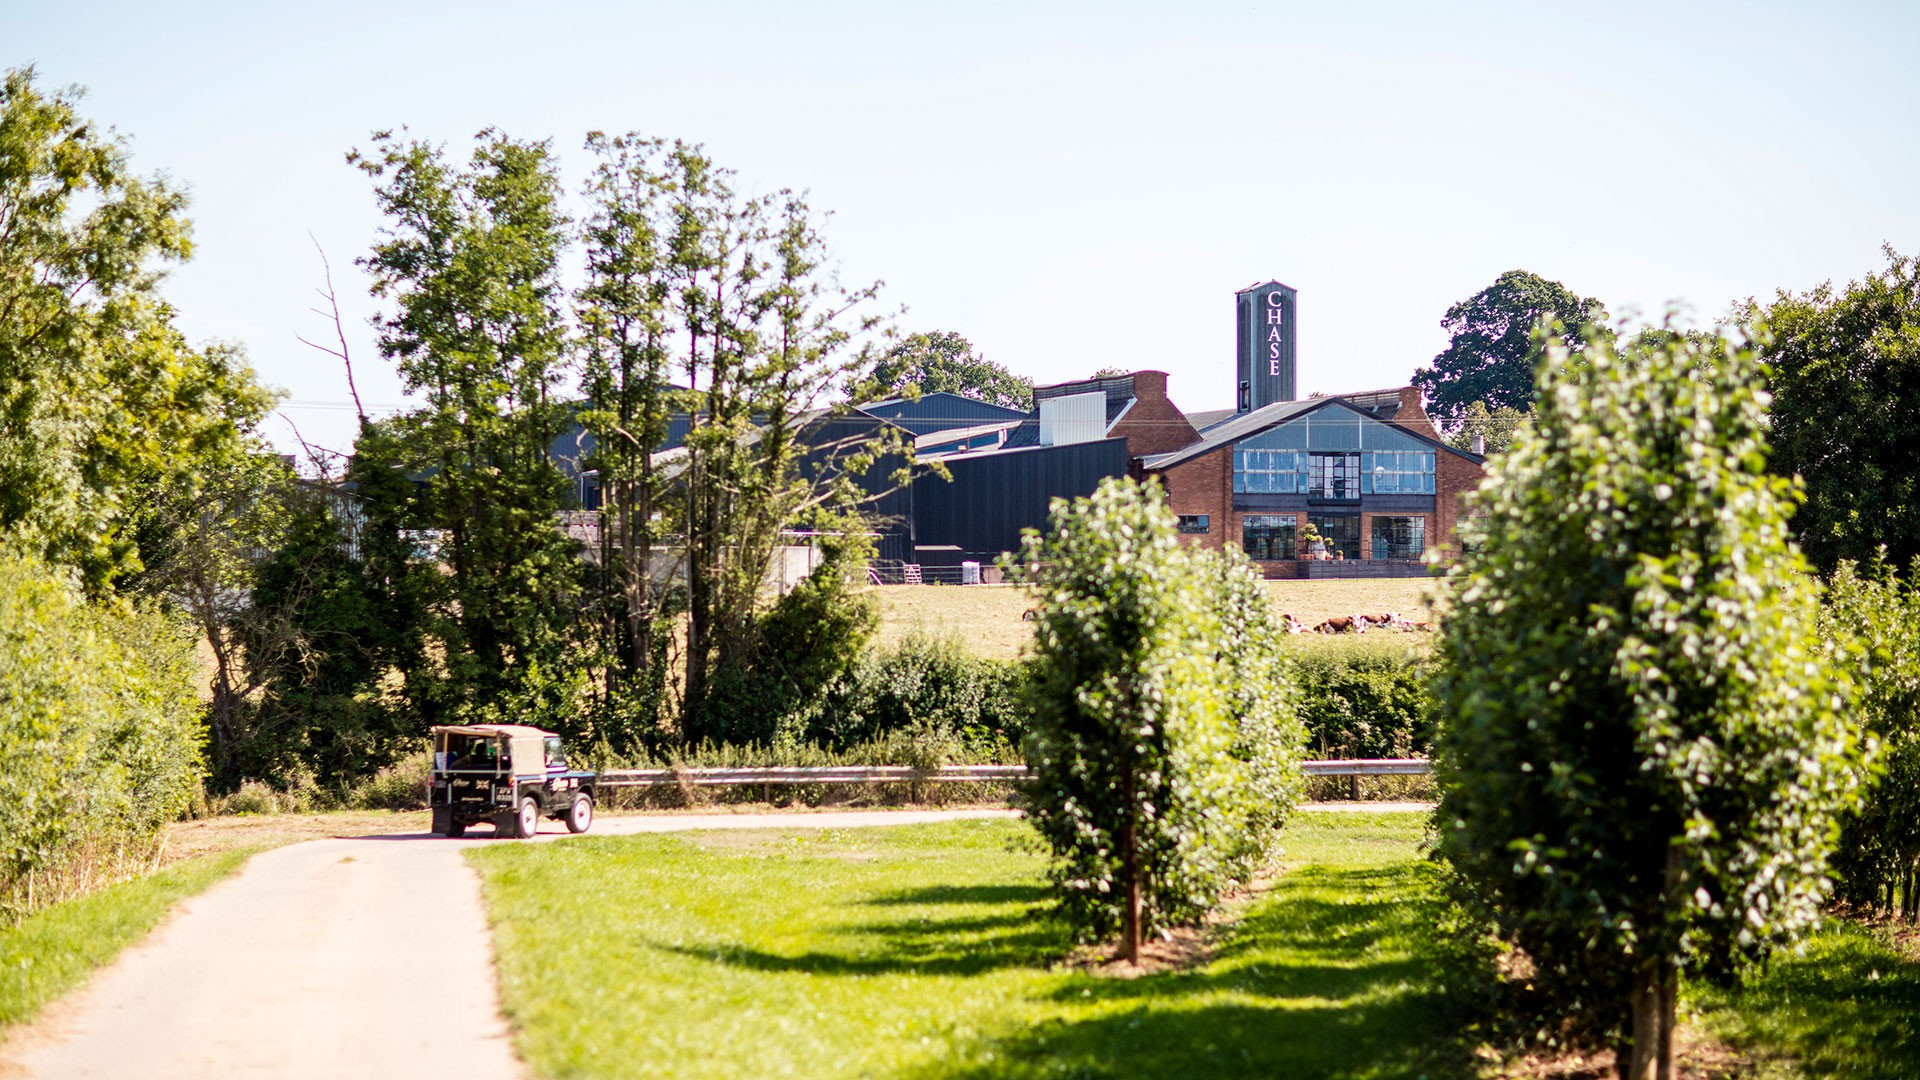 The Chase Distillery, Herefordshire